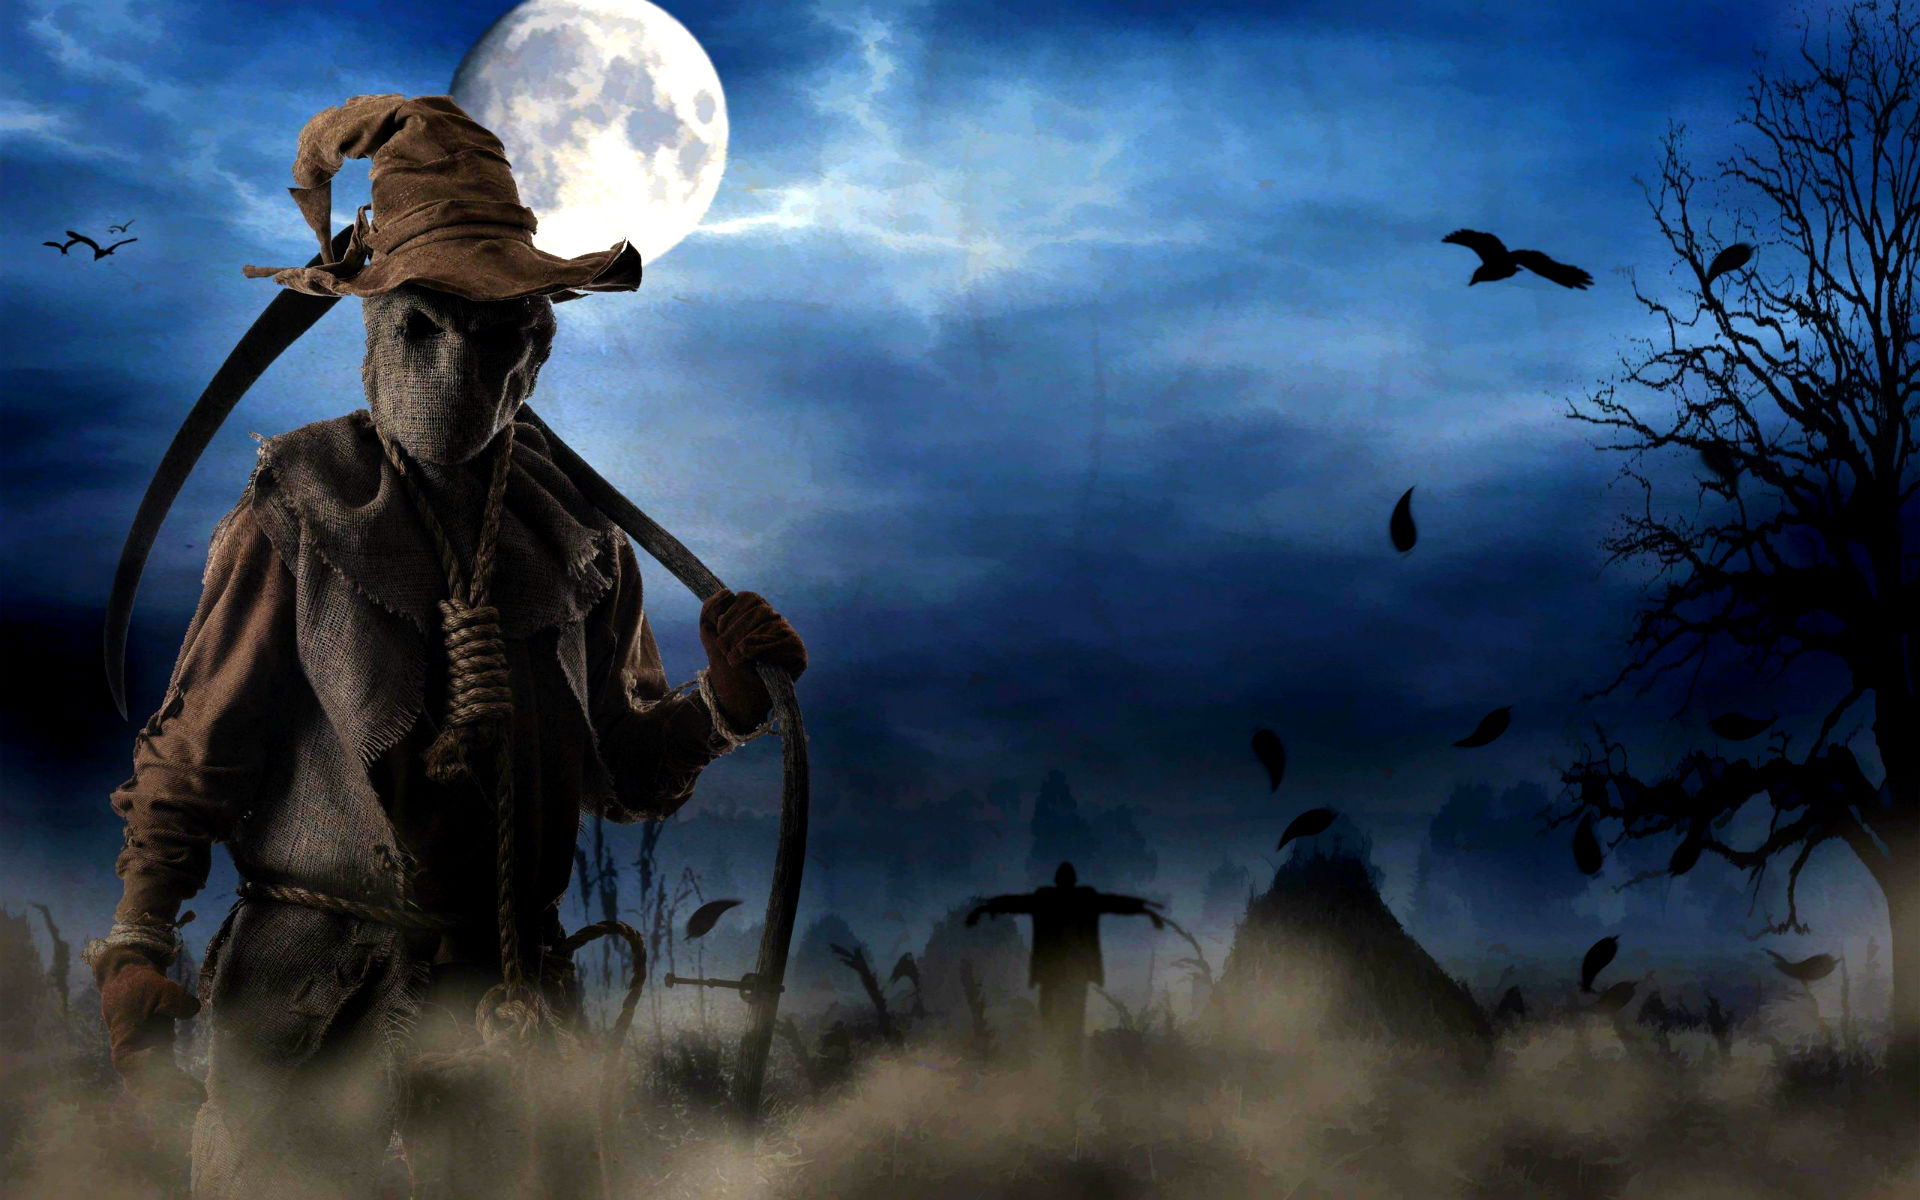 halloween wallpaper download free scary hd wallpapers mela - Creepy Halloween Wallpapers